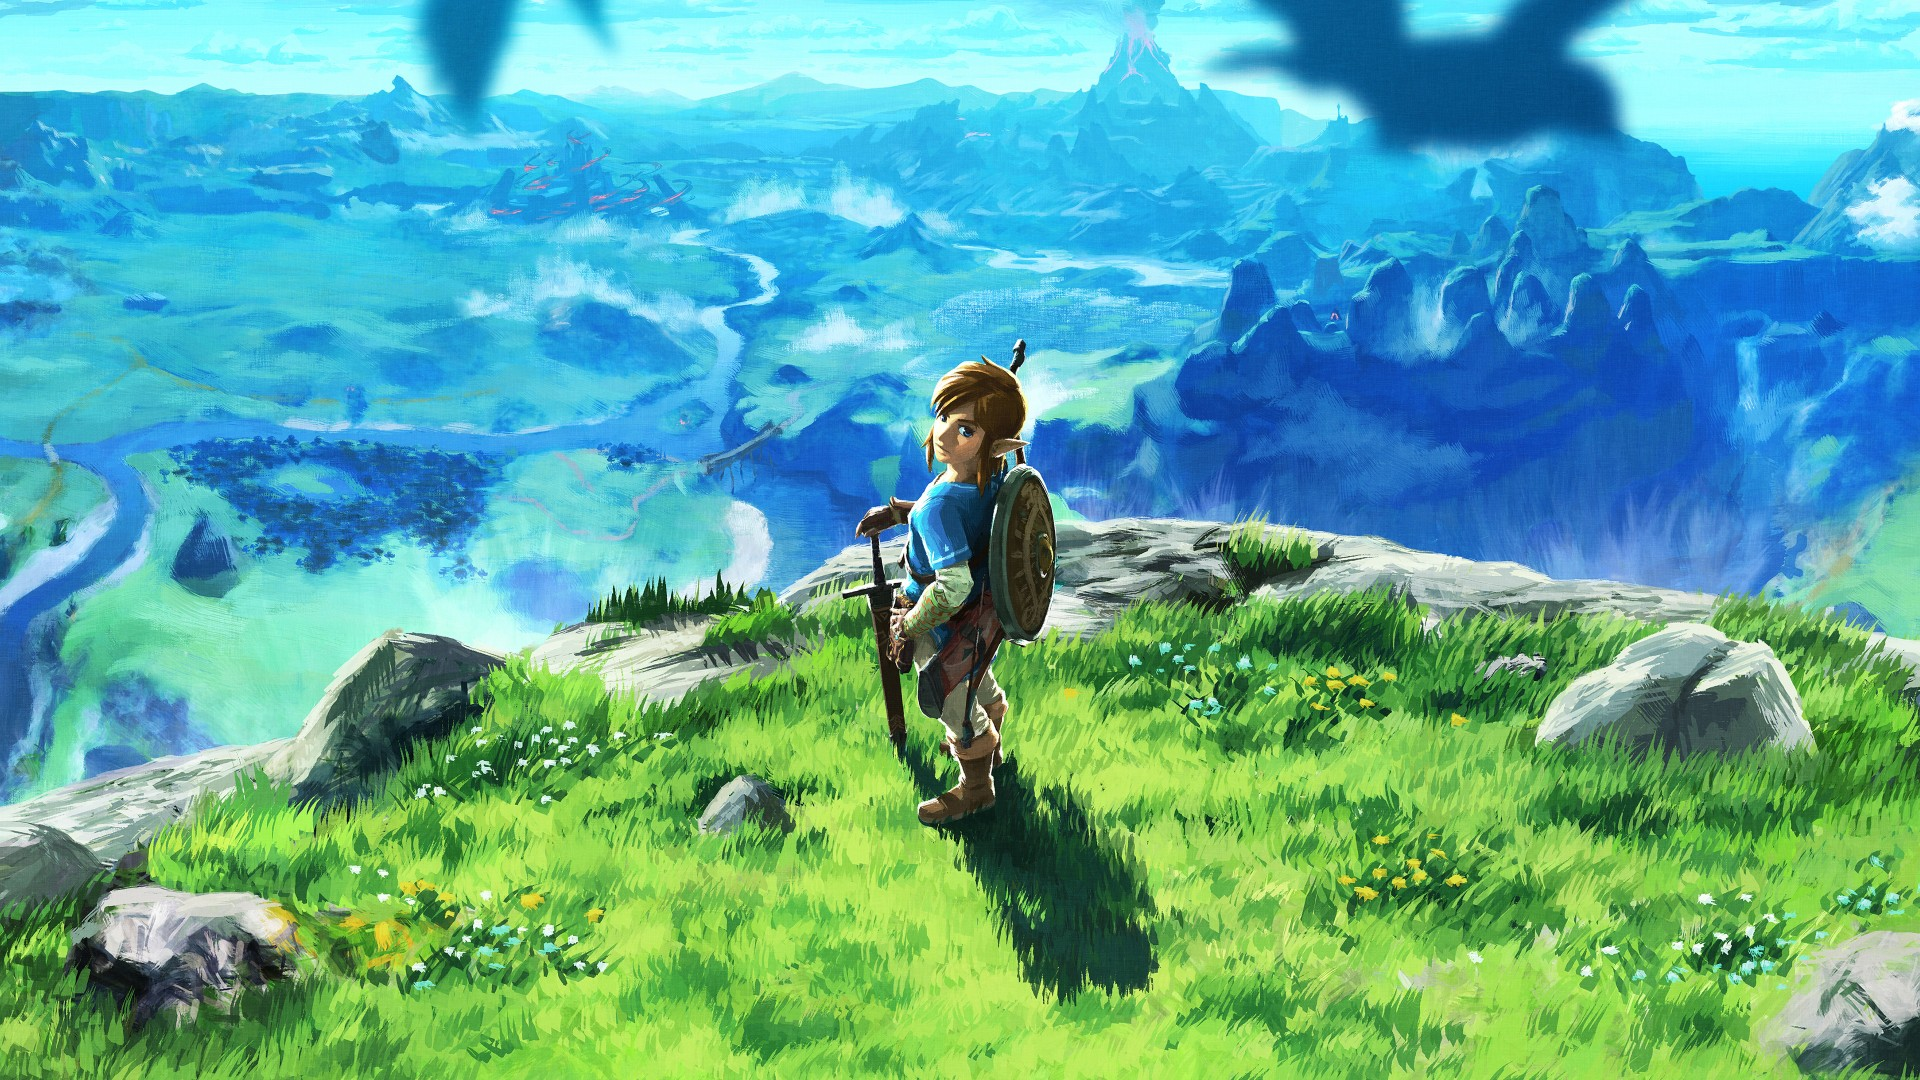 3d Wallpaper Picture Download The Legend Of Zelda Breath Of The Wild 4k 2017 Wallpapers